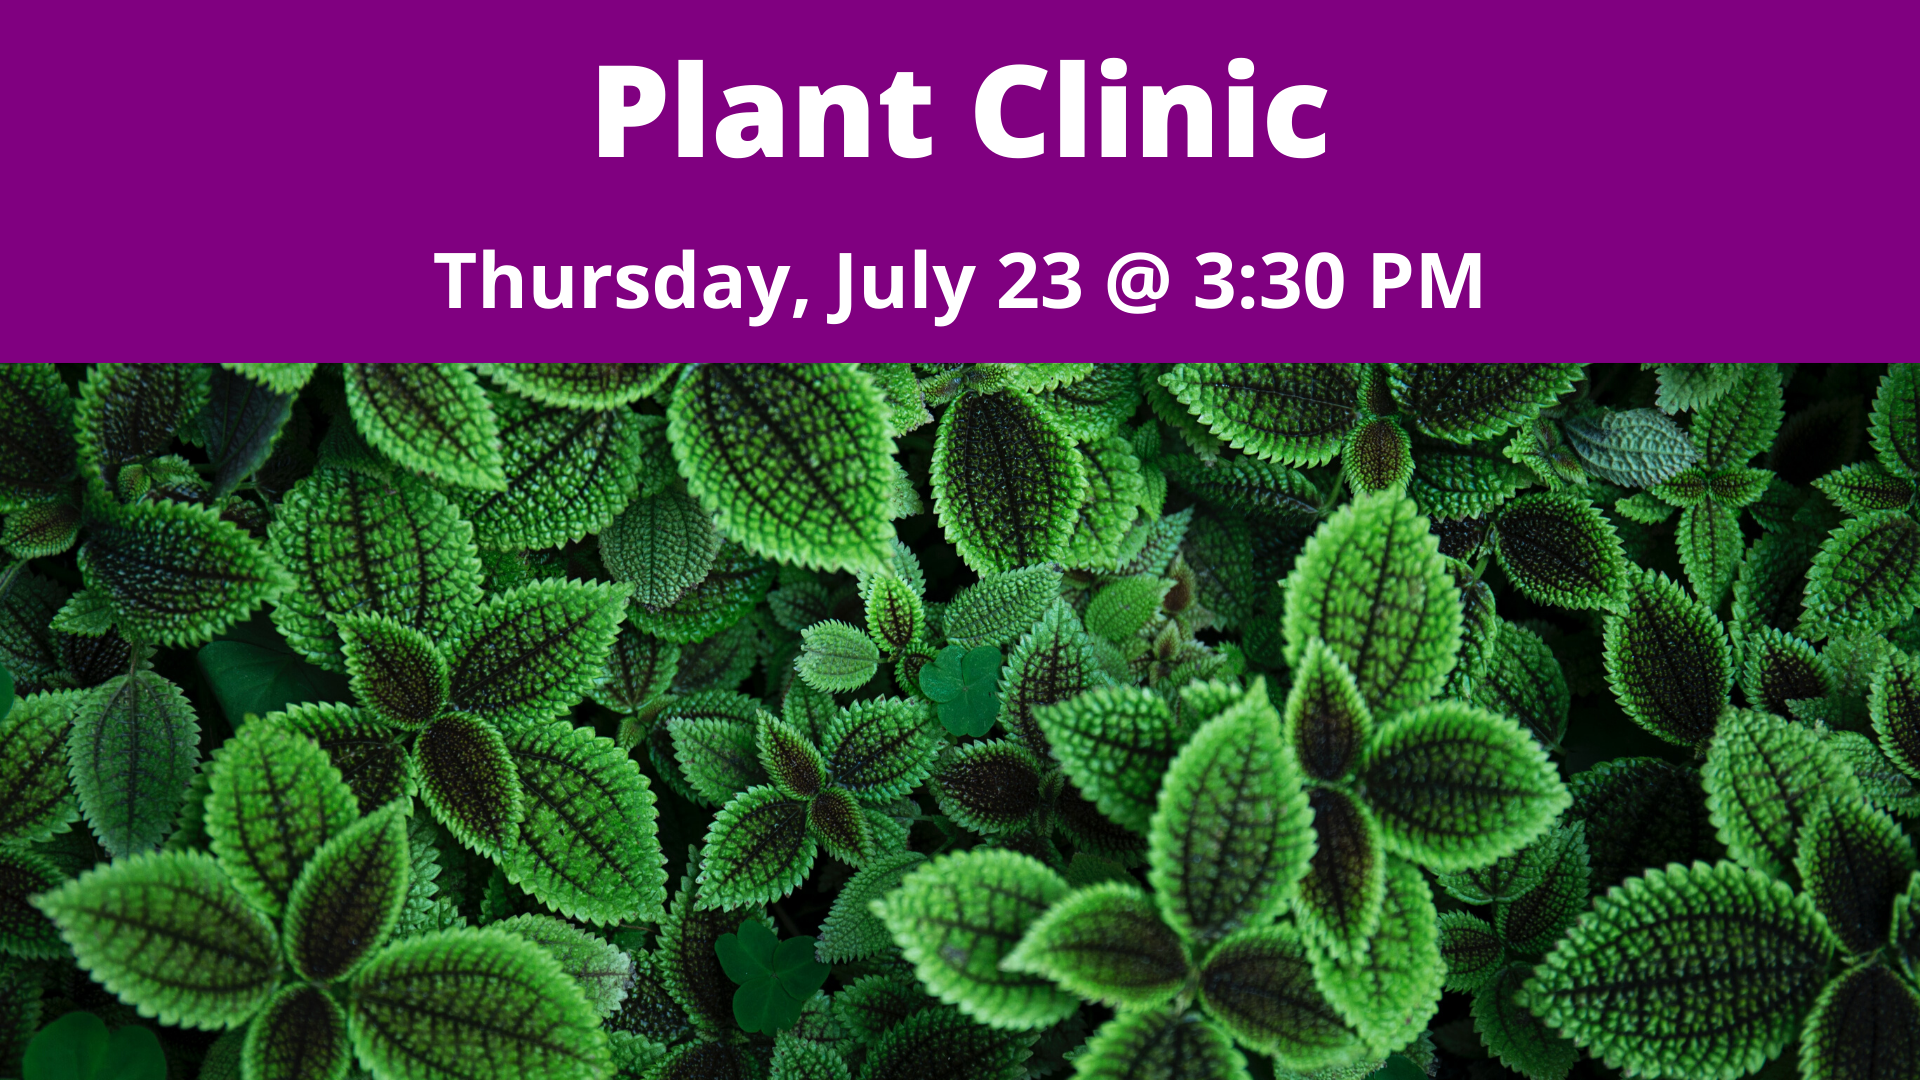 Plant Clinic with Ginny Rosenkranz